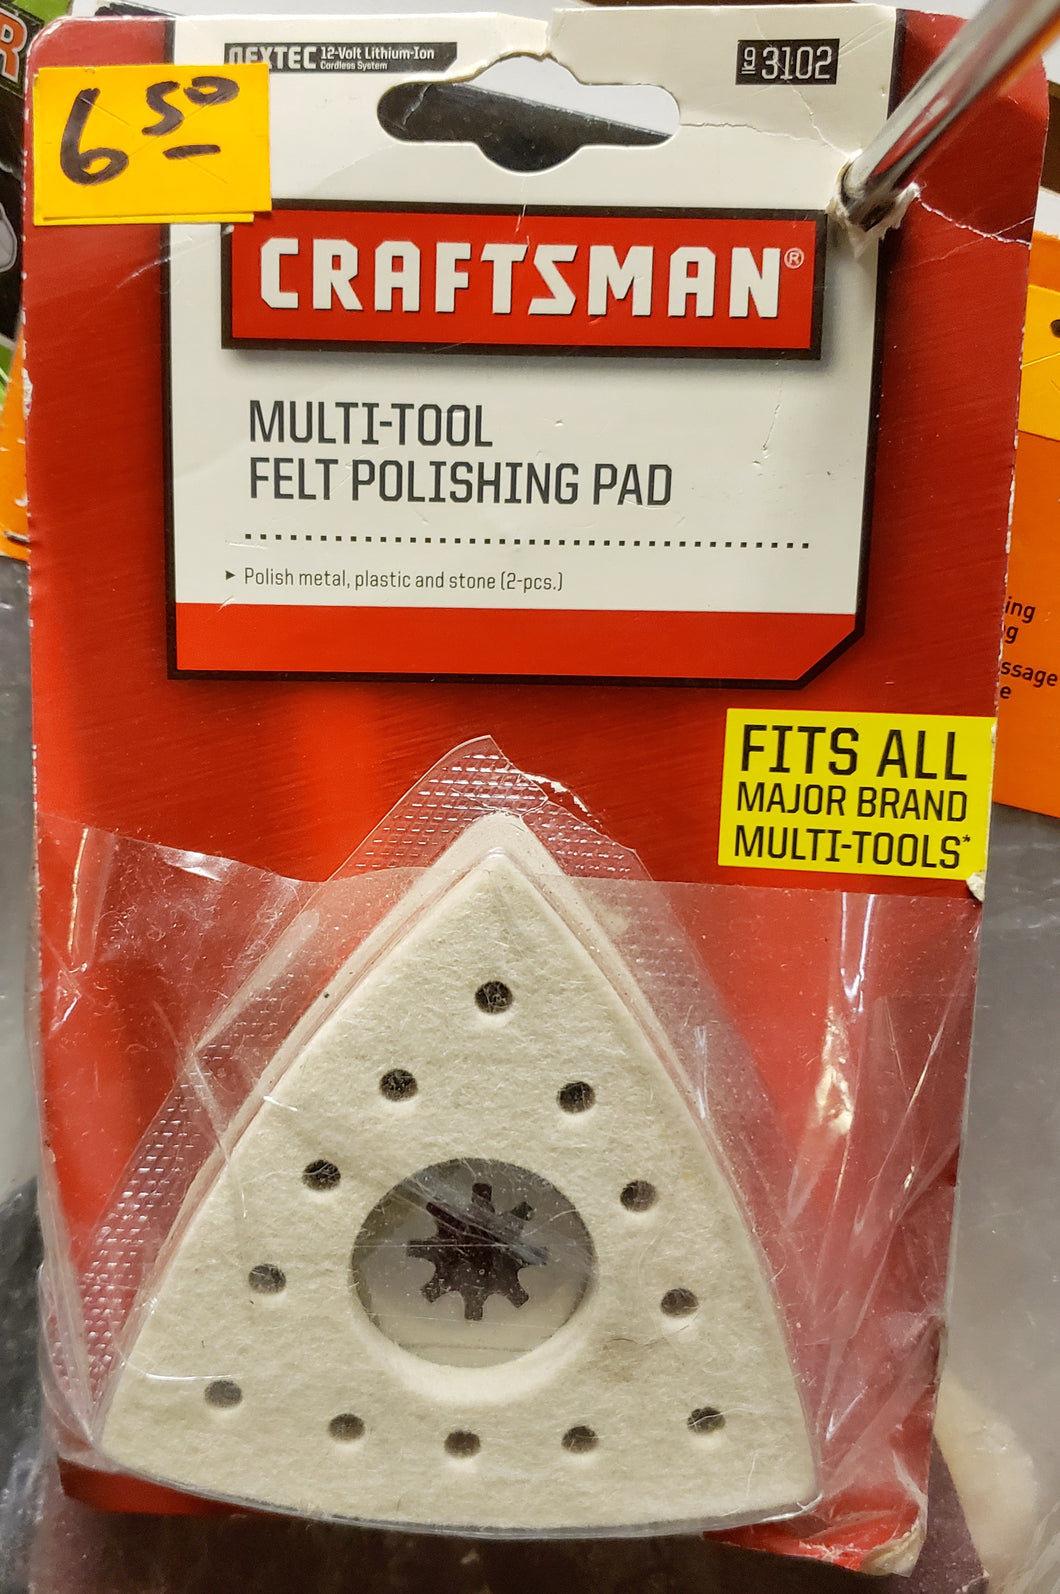 Craftsman 3102 Multi-Tool Felt Polishing Pad